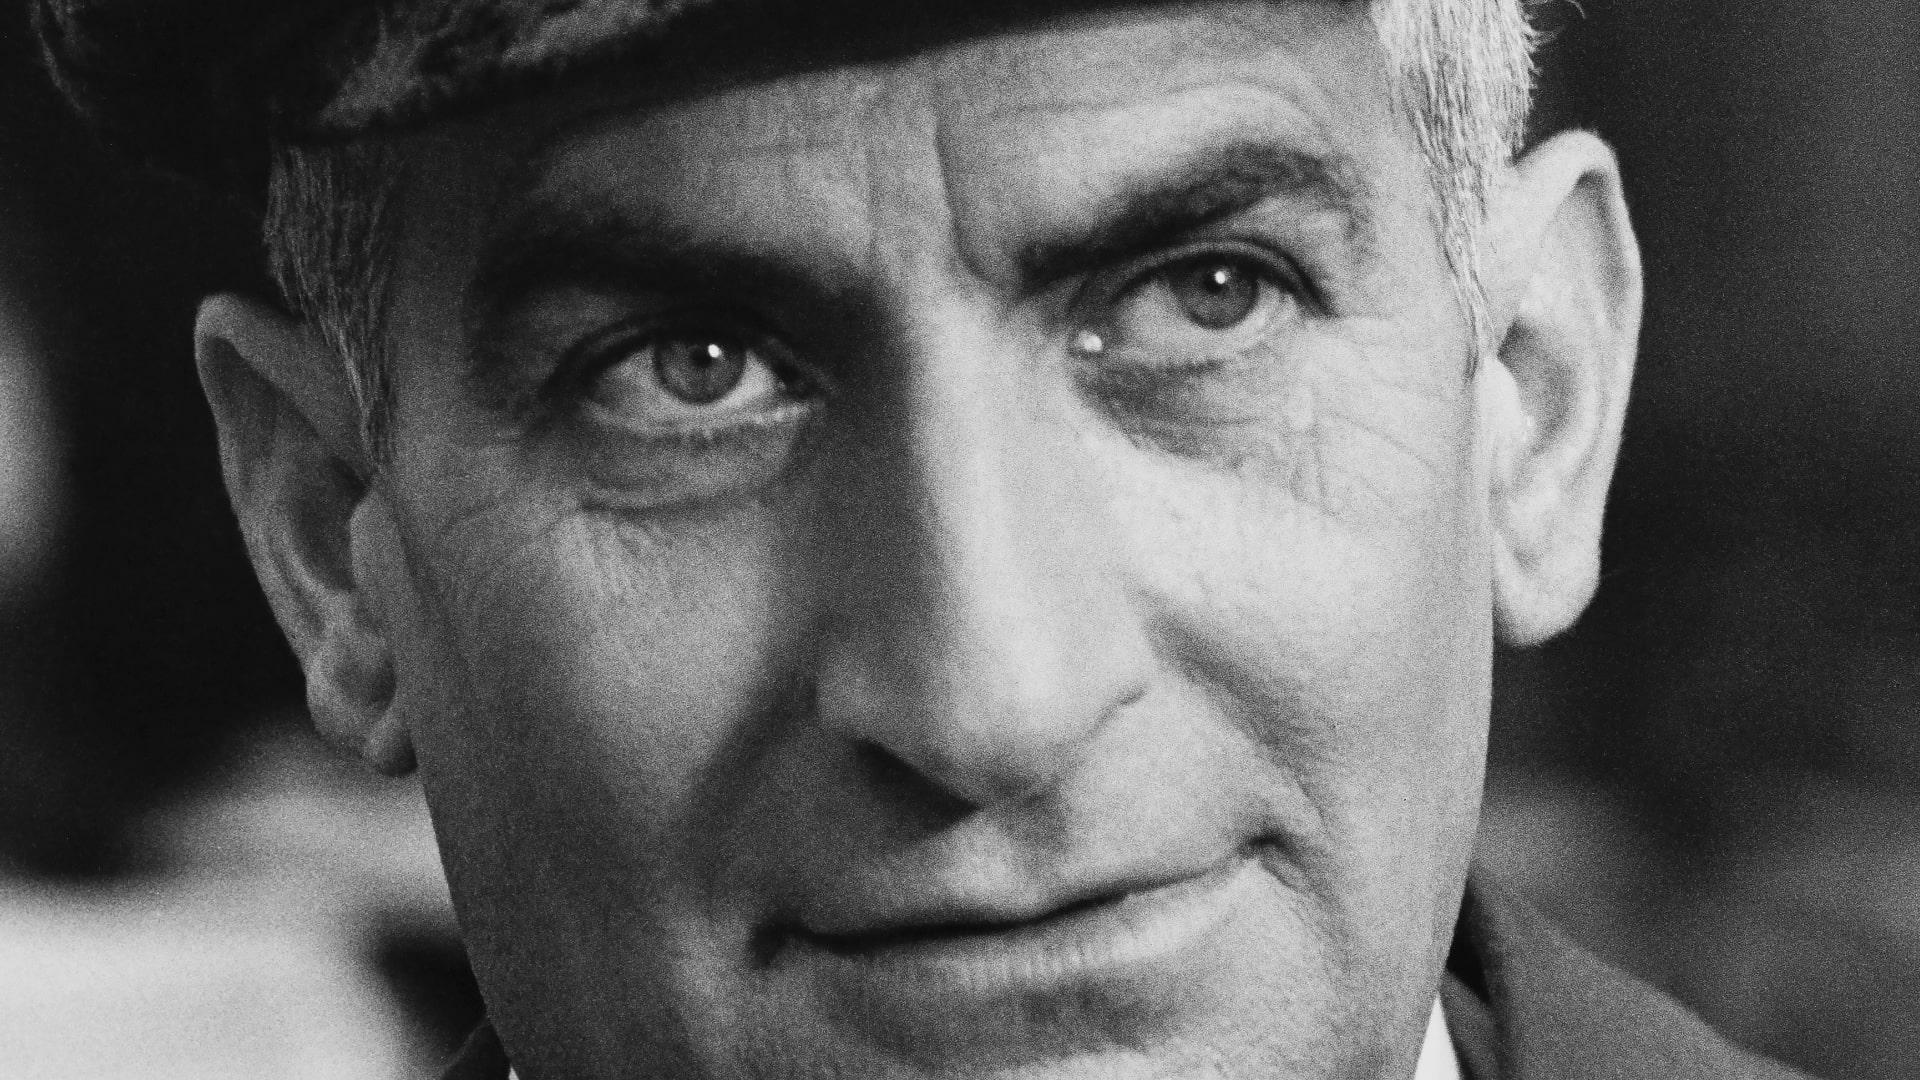 THE MAD ADVENTURES OF LOUIS DE FUNÉS      (to play film click circle button to the right. To add to watchlist, click + button below it)